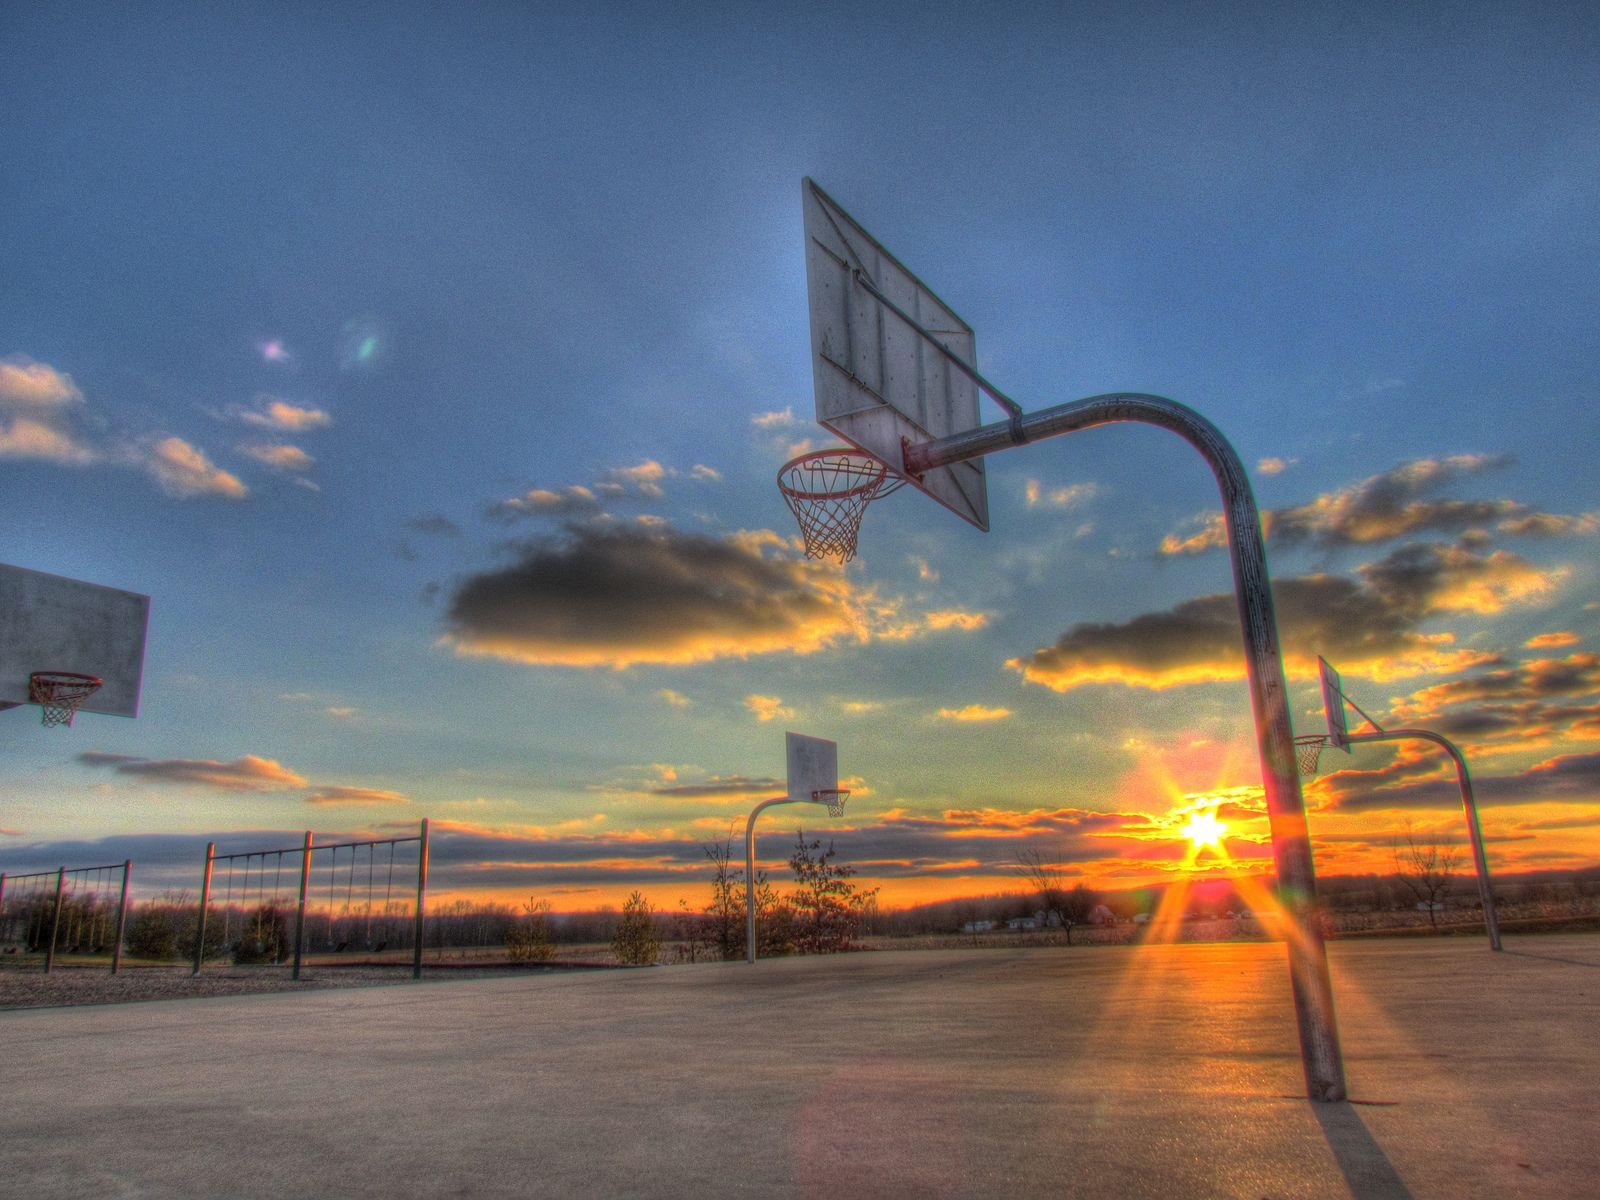 Hd Basketball Court Wallpaper For Iphone With Hd Wallpaper